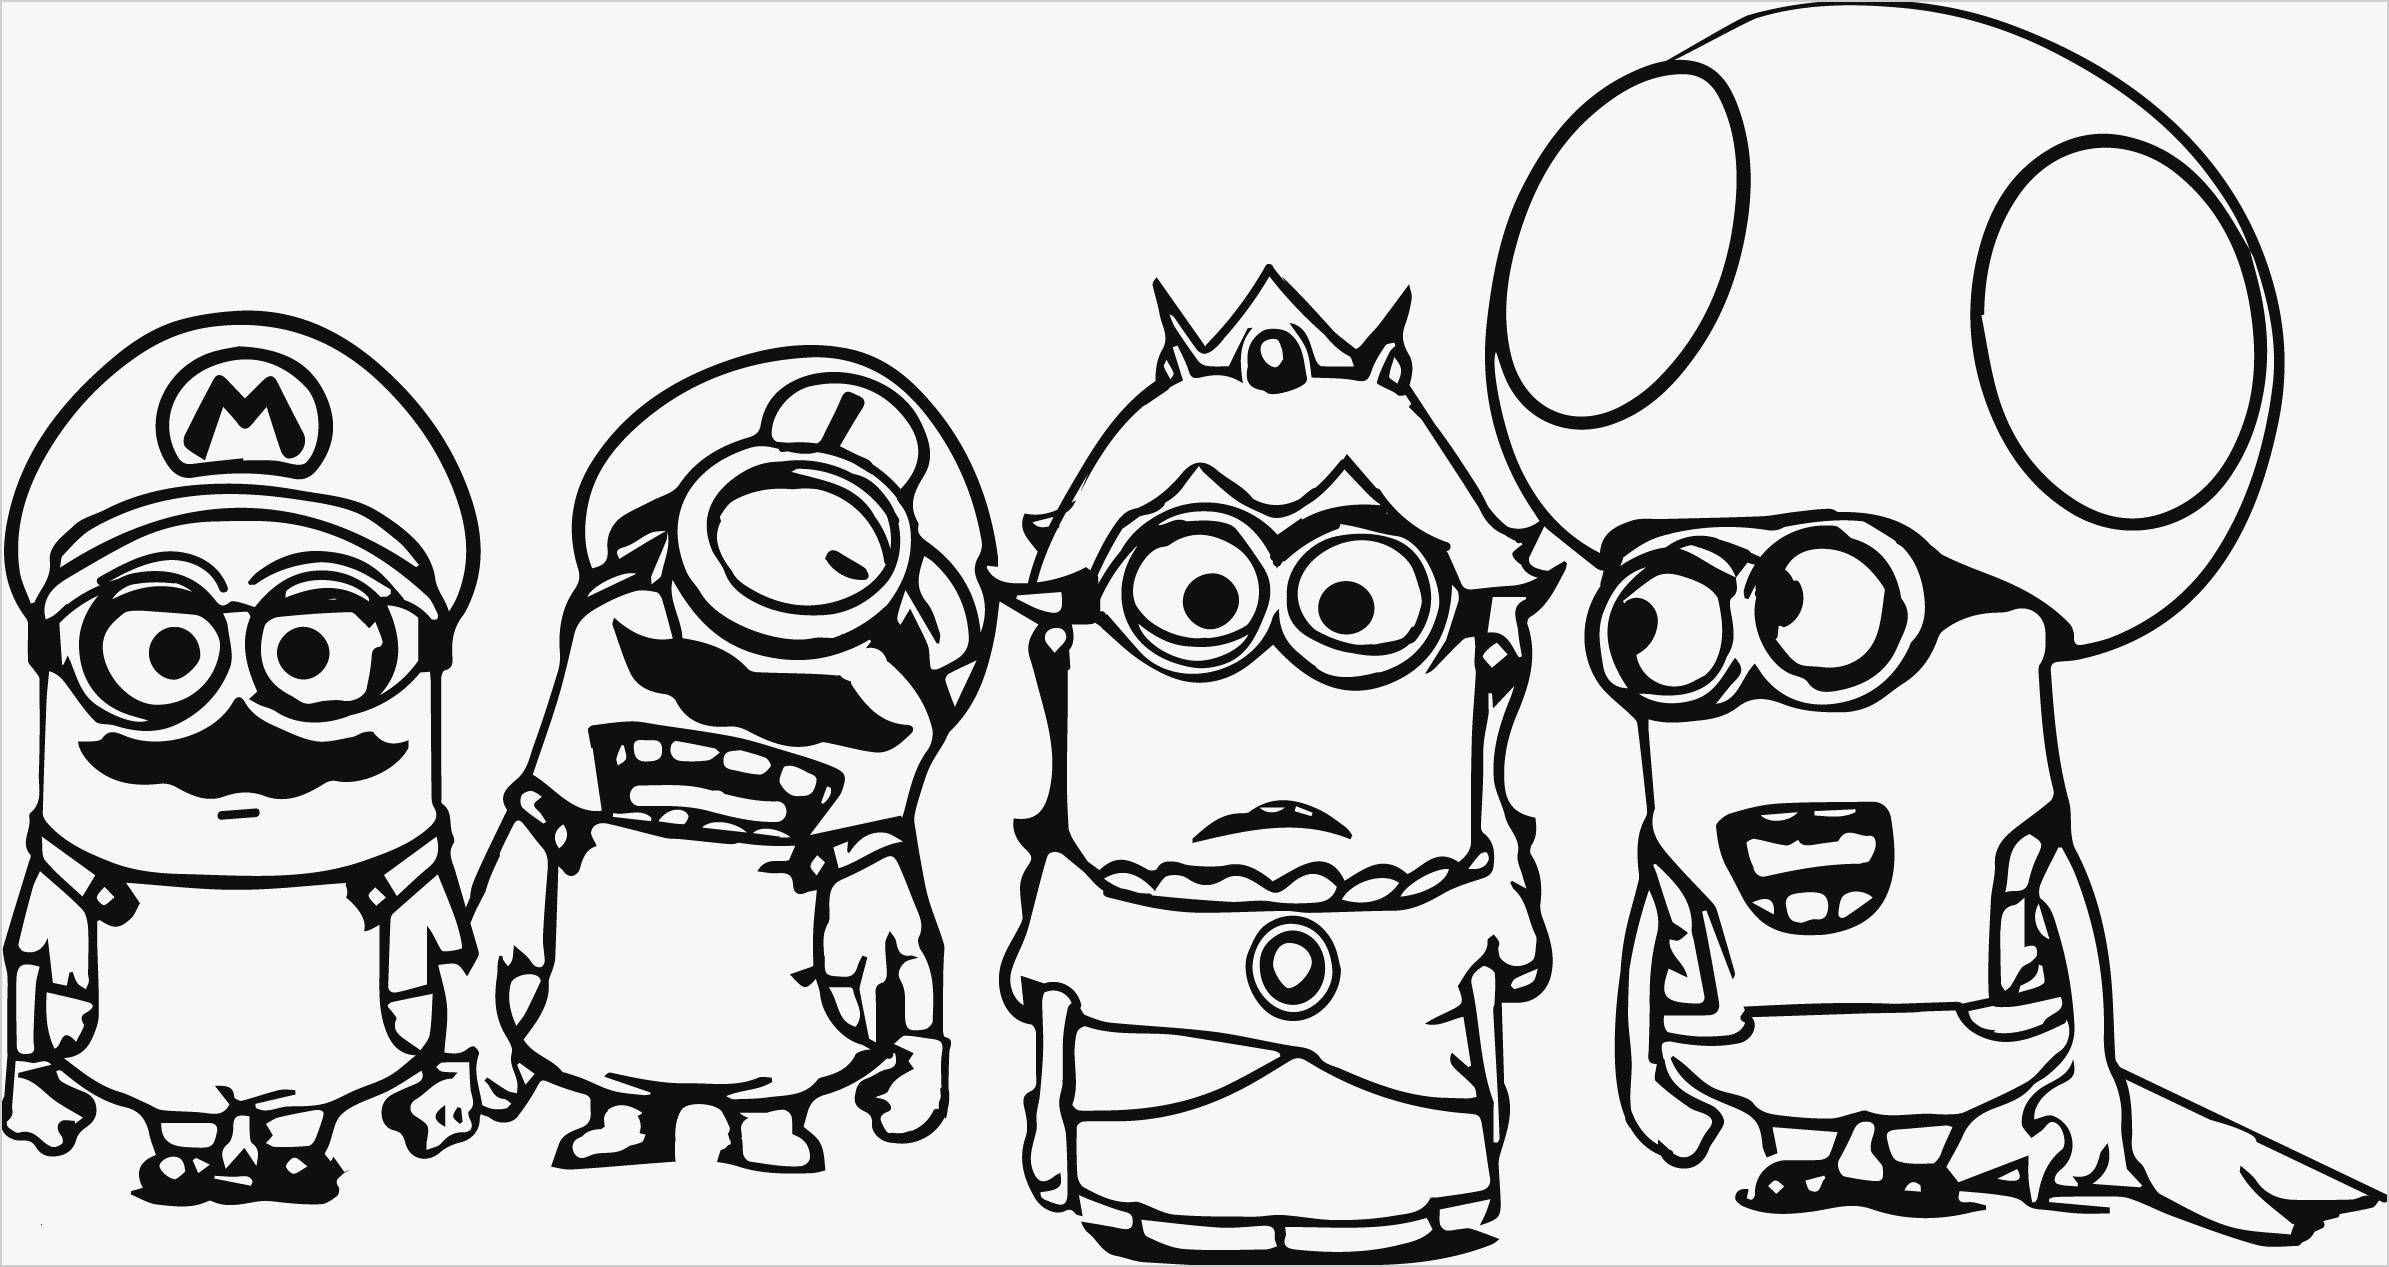 Minion Printable Coloring Pages Free Collection Of 43 Minion Coloring Pages Download Them And Entitlementtrap Com In 2020 Minions Coloring Pages Minion Coloring Pages Animal Coloring Pages